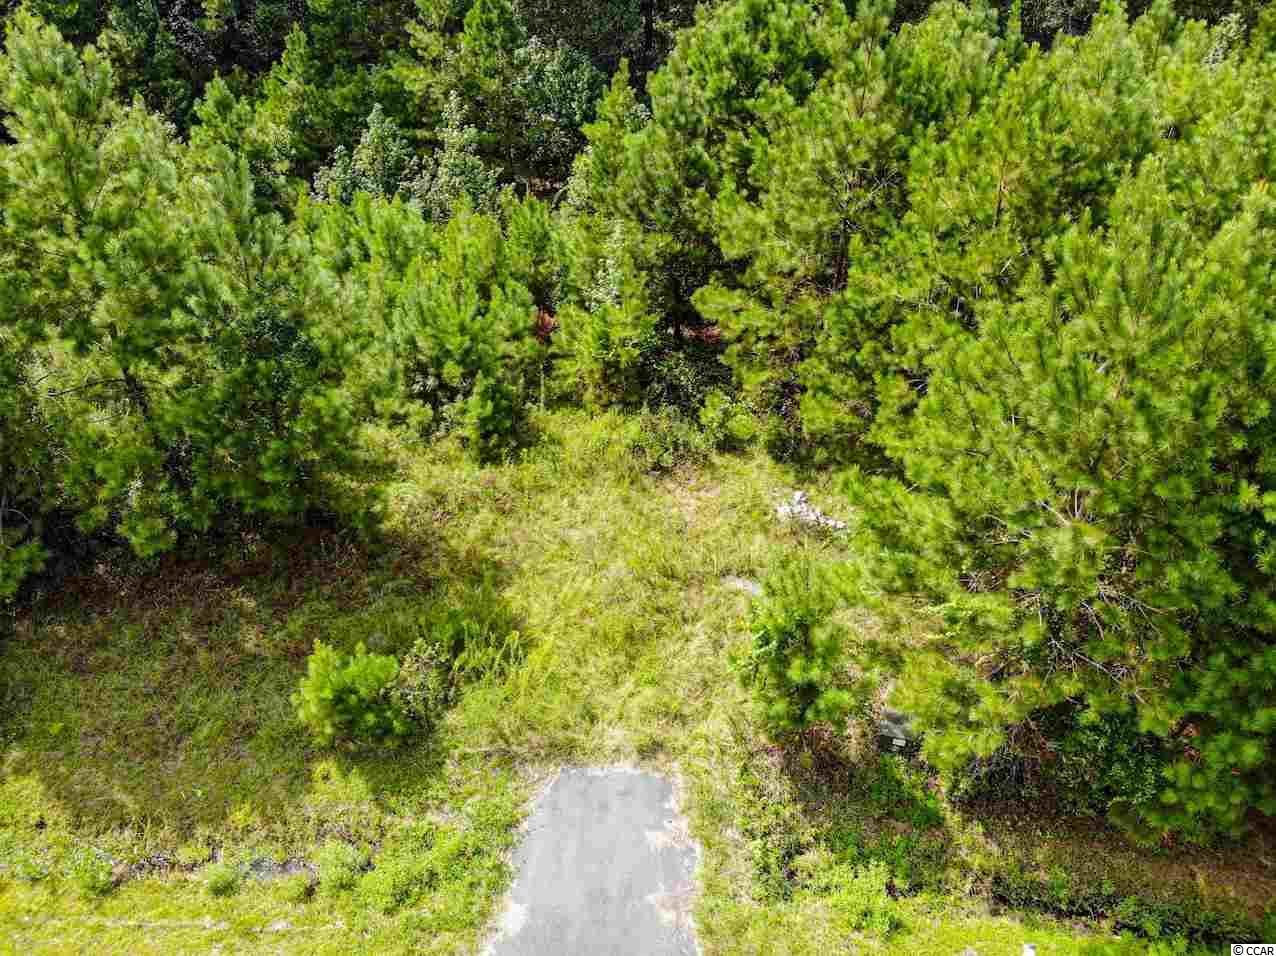 A beautiful lot that is almost a full half acre of land! Great opportunity with so much potential! You can build your dream home in the wonderful neighborhood of Northwood Park with NO HOA! Being in such a convenient location, you are just minutes away from delicious restaurants, shopping, and so much more!